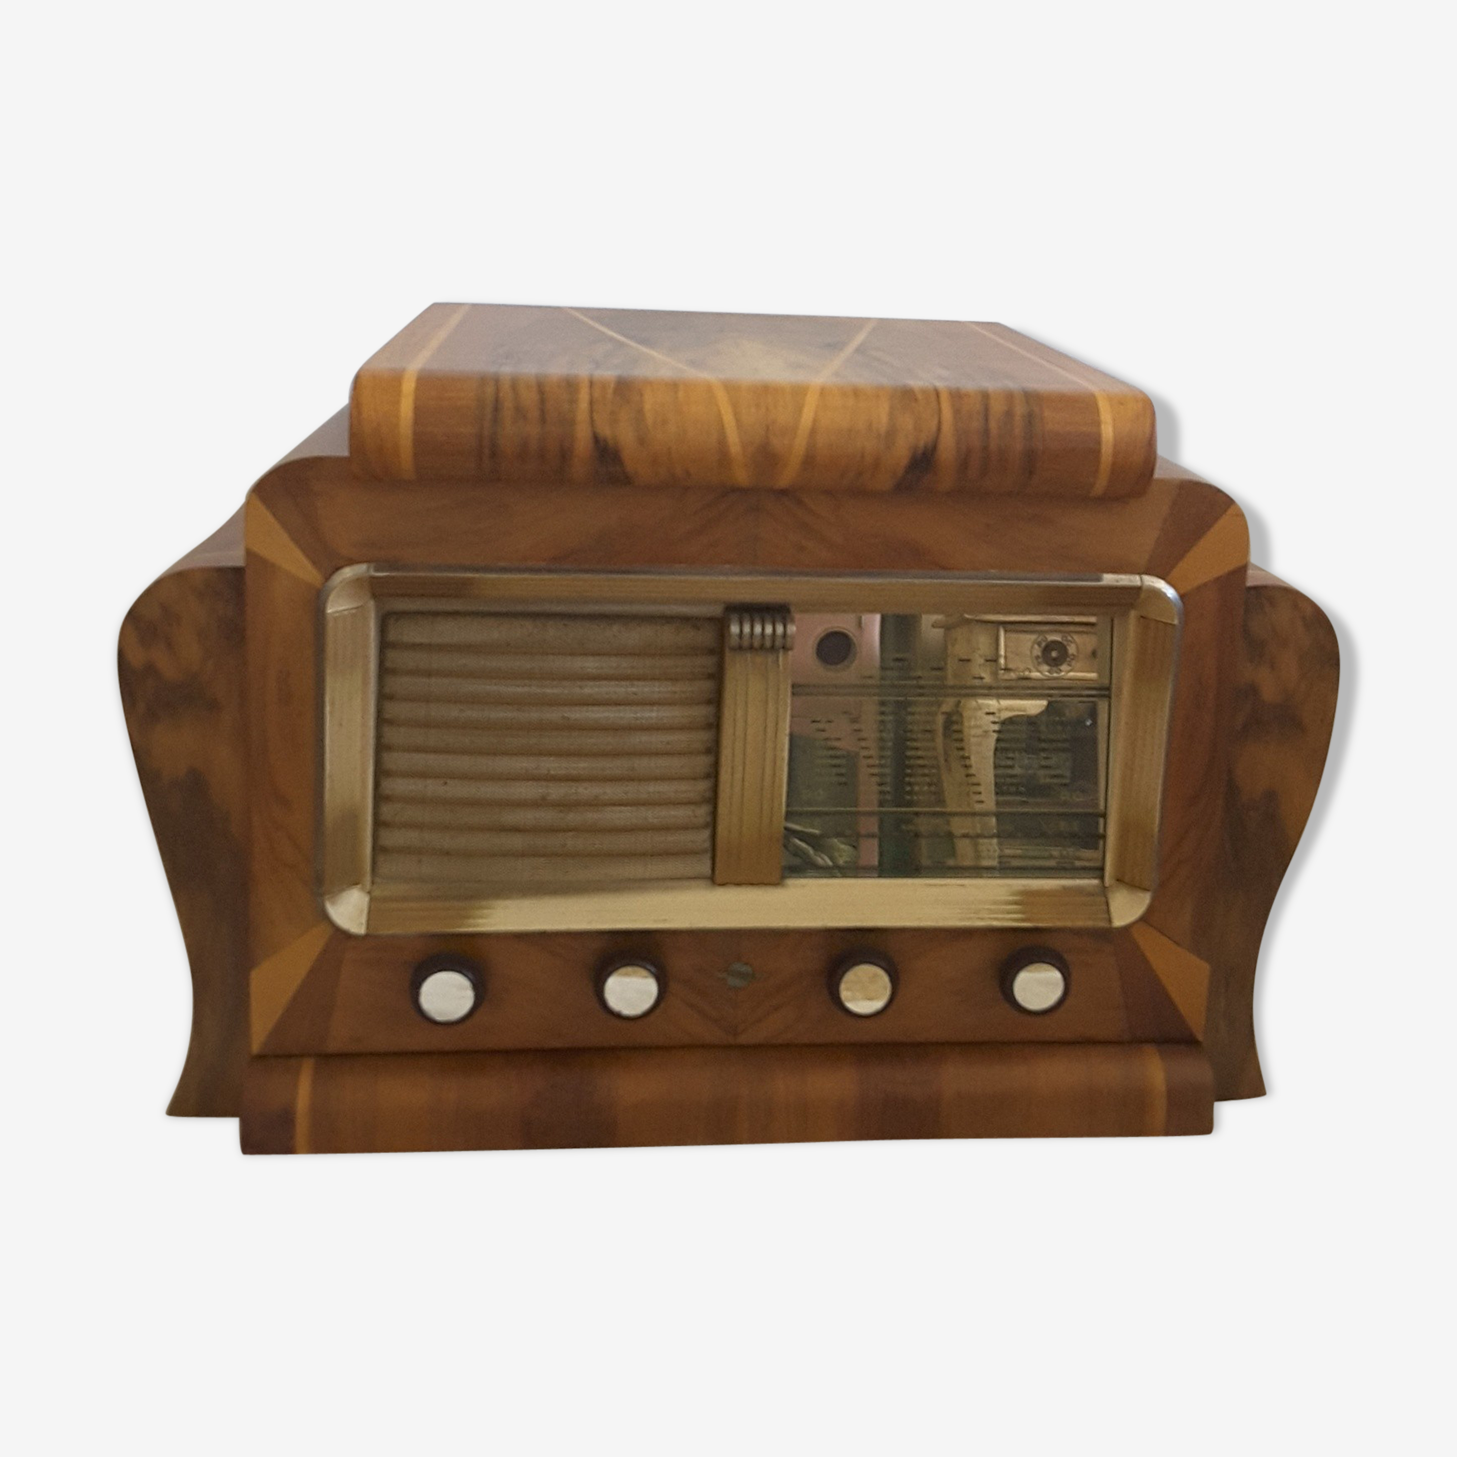 Former radio set with turntable